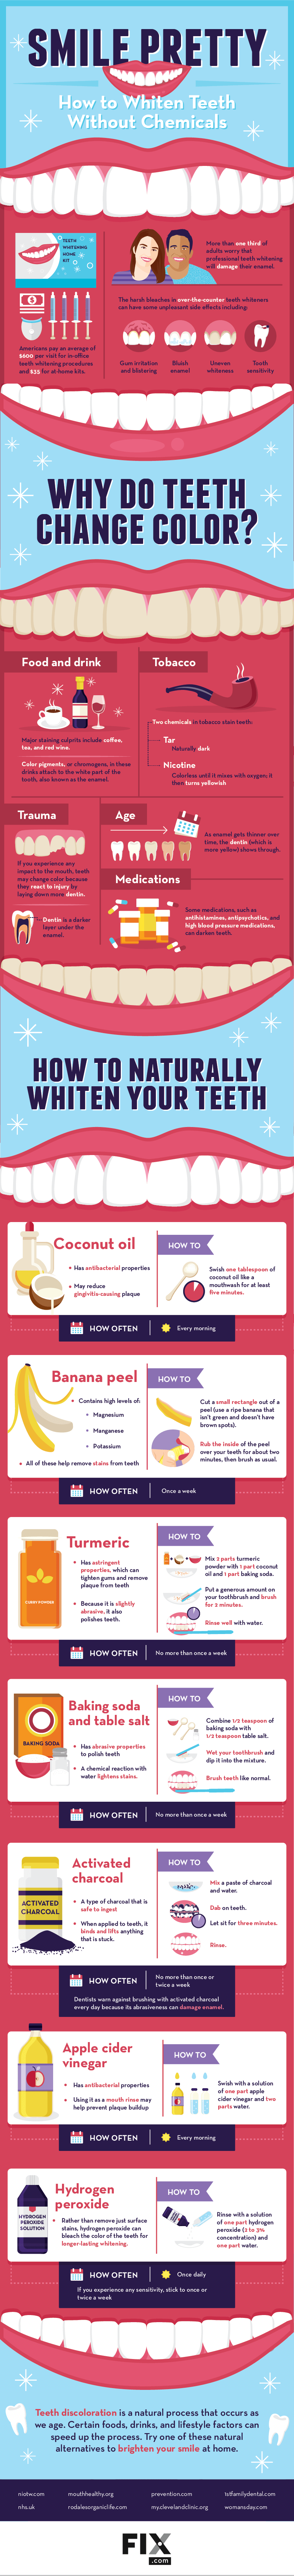 Smile Pretty: How to Whiten Teeth Without the Chemicals